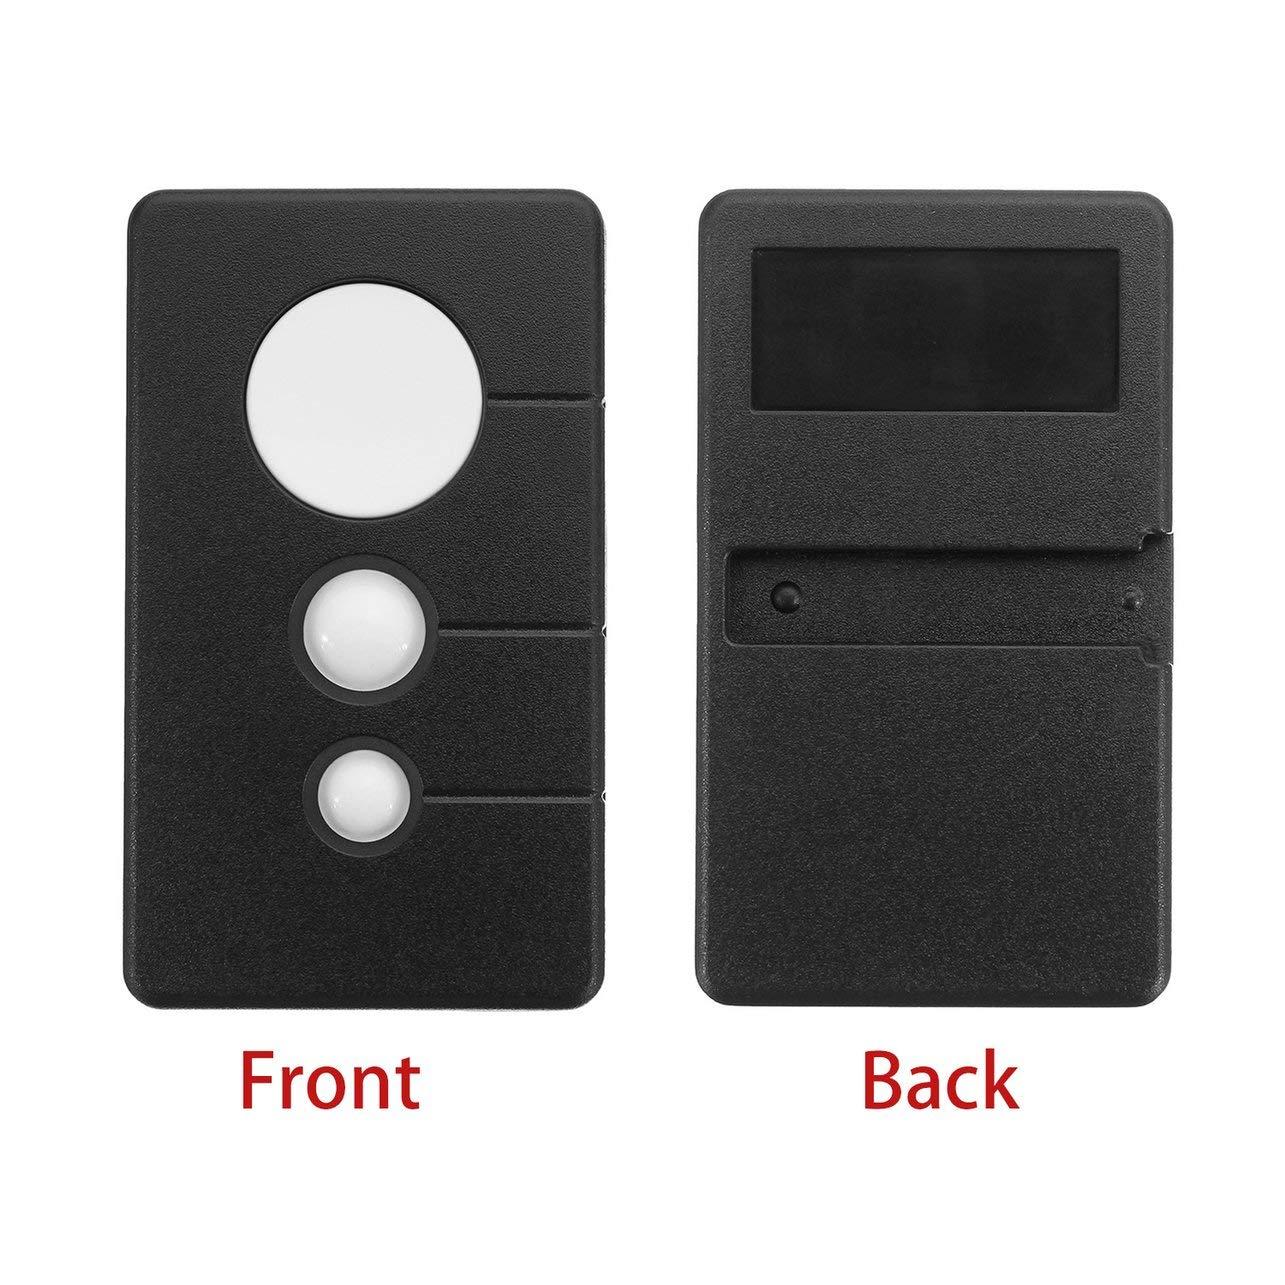 Milabelle Small Size 3 Keys 390MHz Garage Door Remote Opener Suitable for Sears Craftsman Chamberlain LiftMaster 3BTN Black